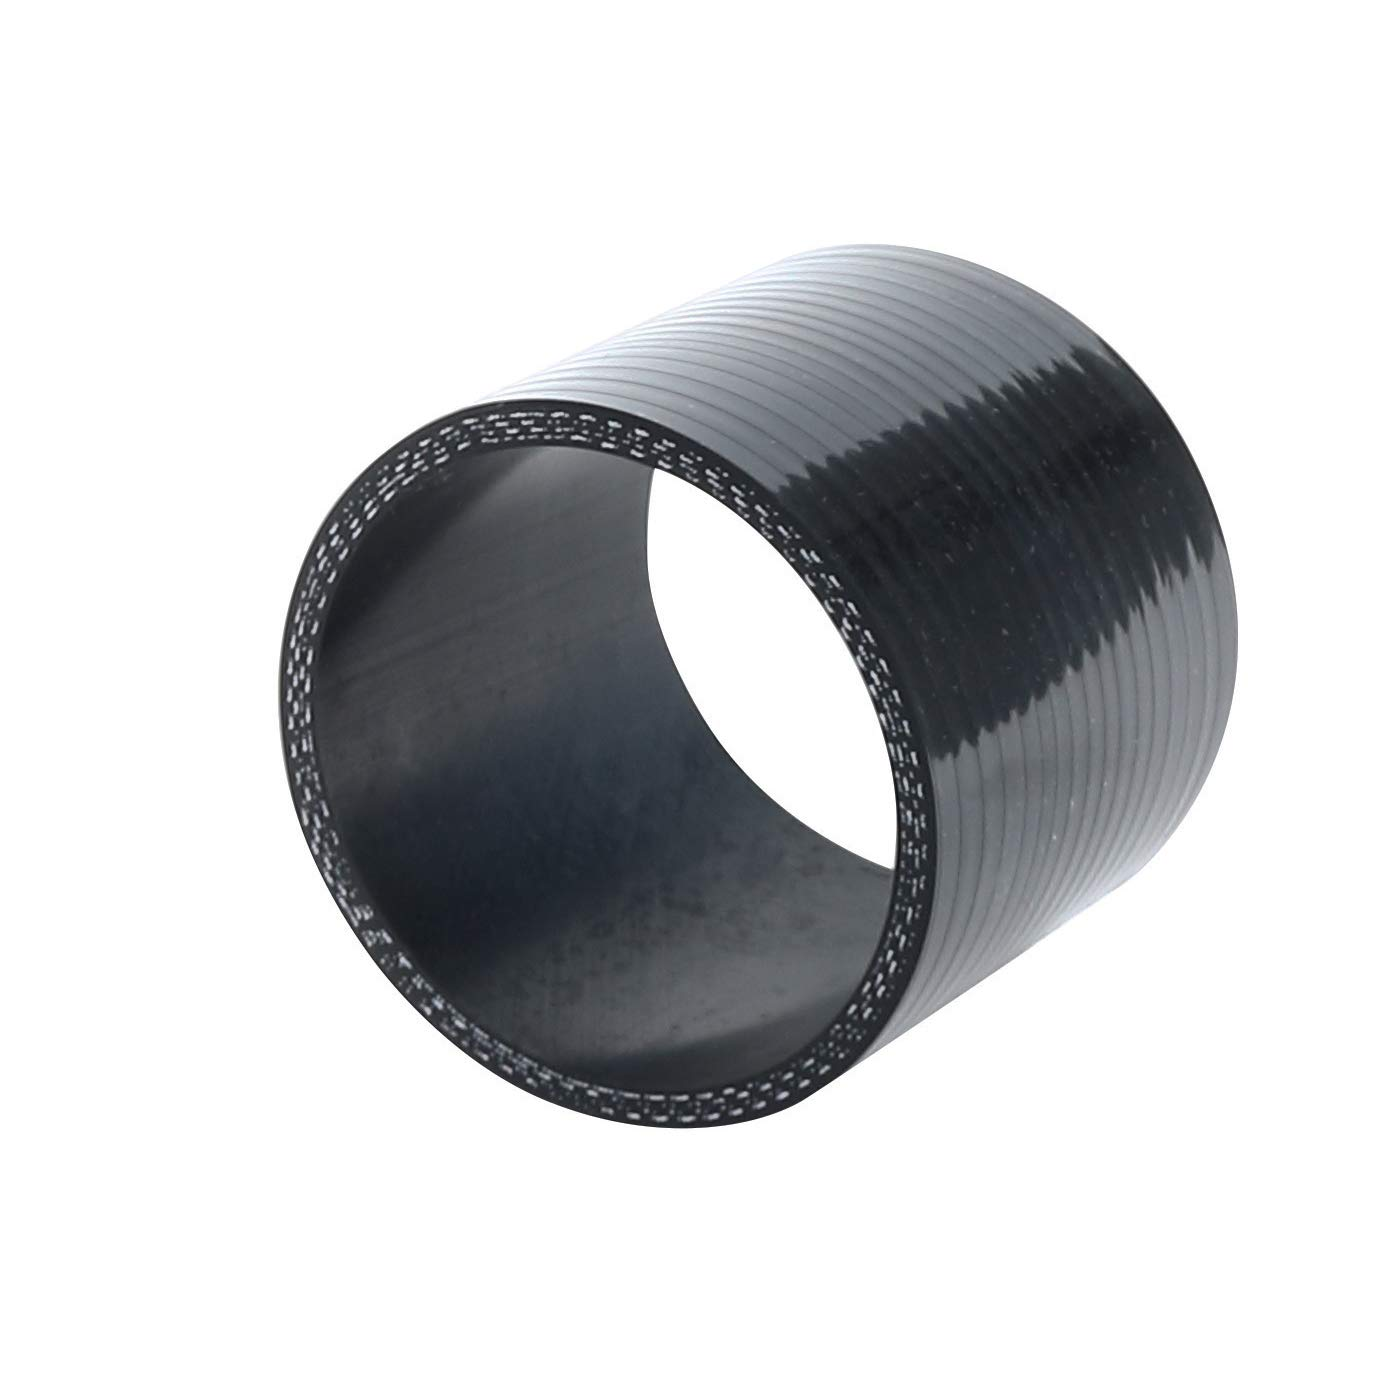 ID 2.5 to 3 Black Leg Length 3.5 Wall Thickness 0.18 90mm 80 PSI Maximum Pressure 63mm to 76mm 3-Ply Reinforced 90 Degree Reducer Coupler 4.5mm Universal Automotive Silicone Hose